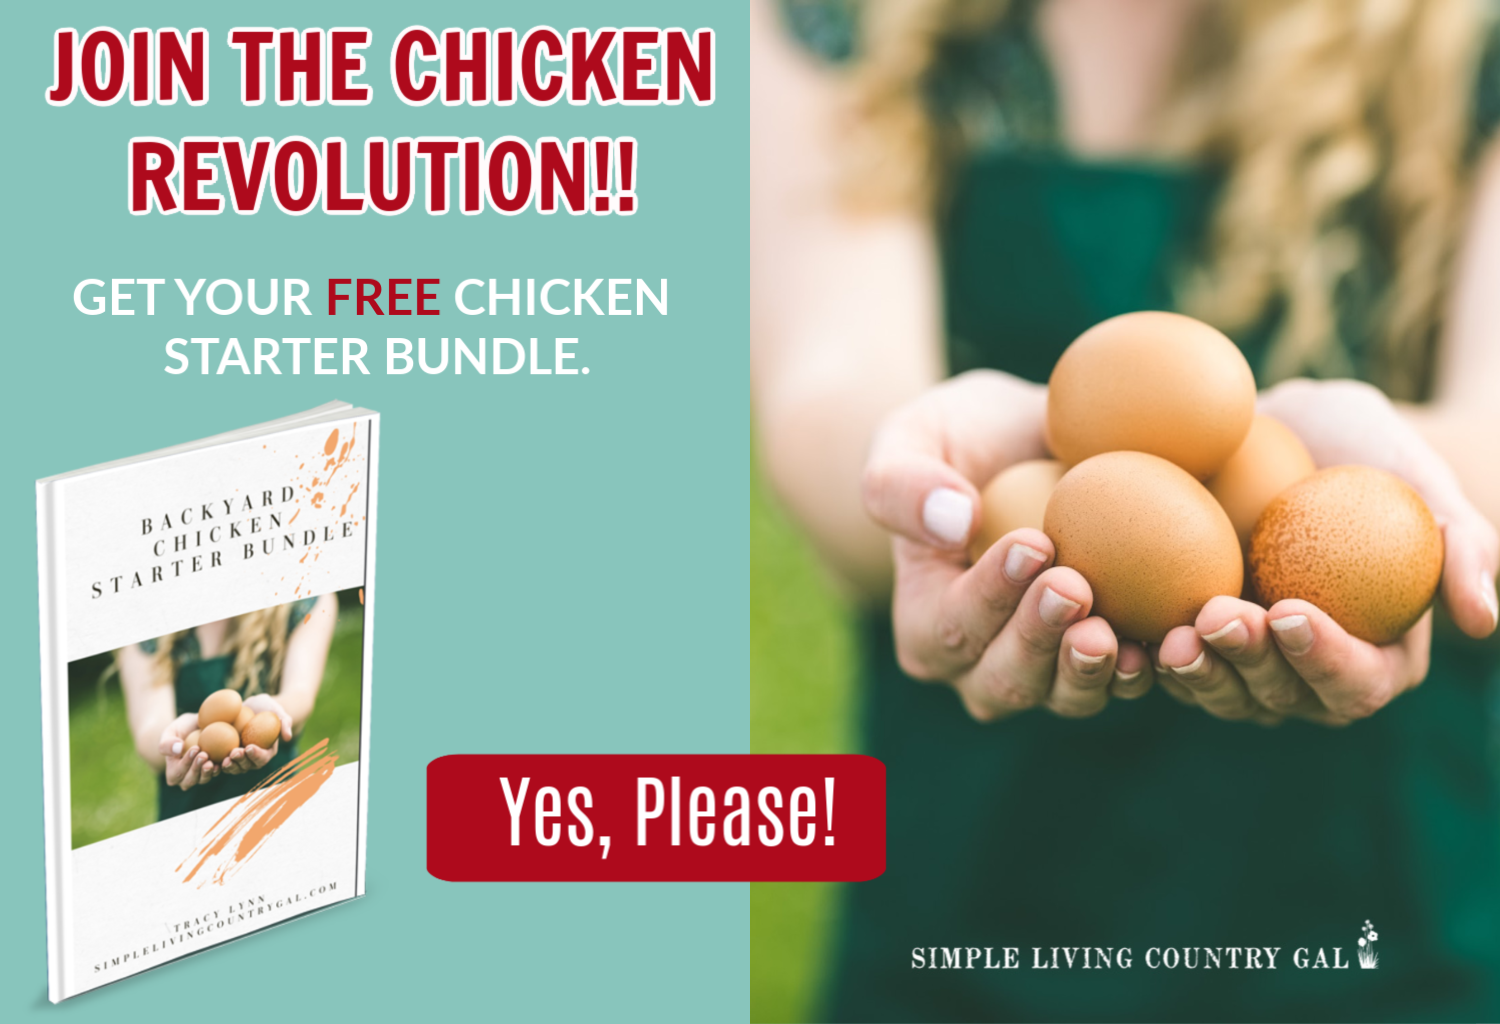 Click here to get your free Chicken Starter Bundle